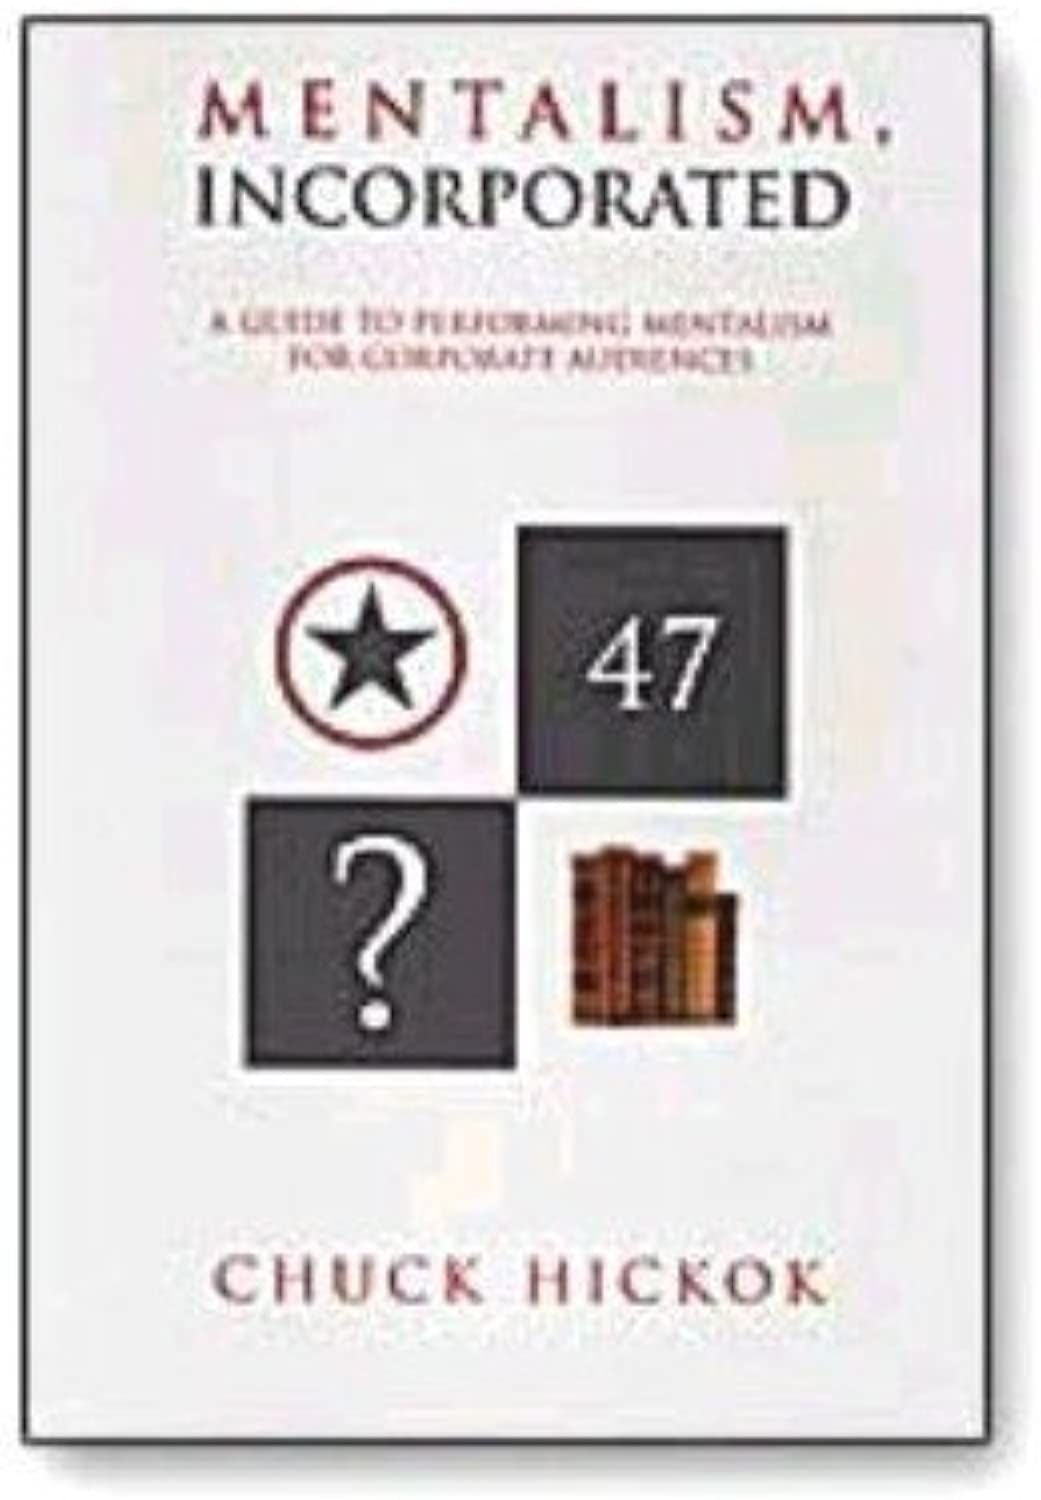 Mentalism Incorporated book Chuck Hickok